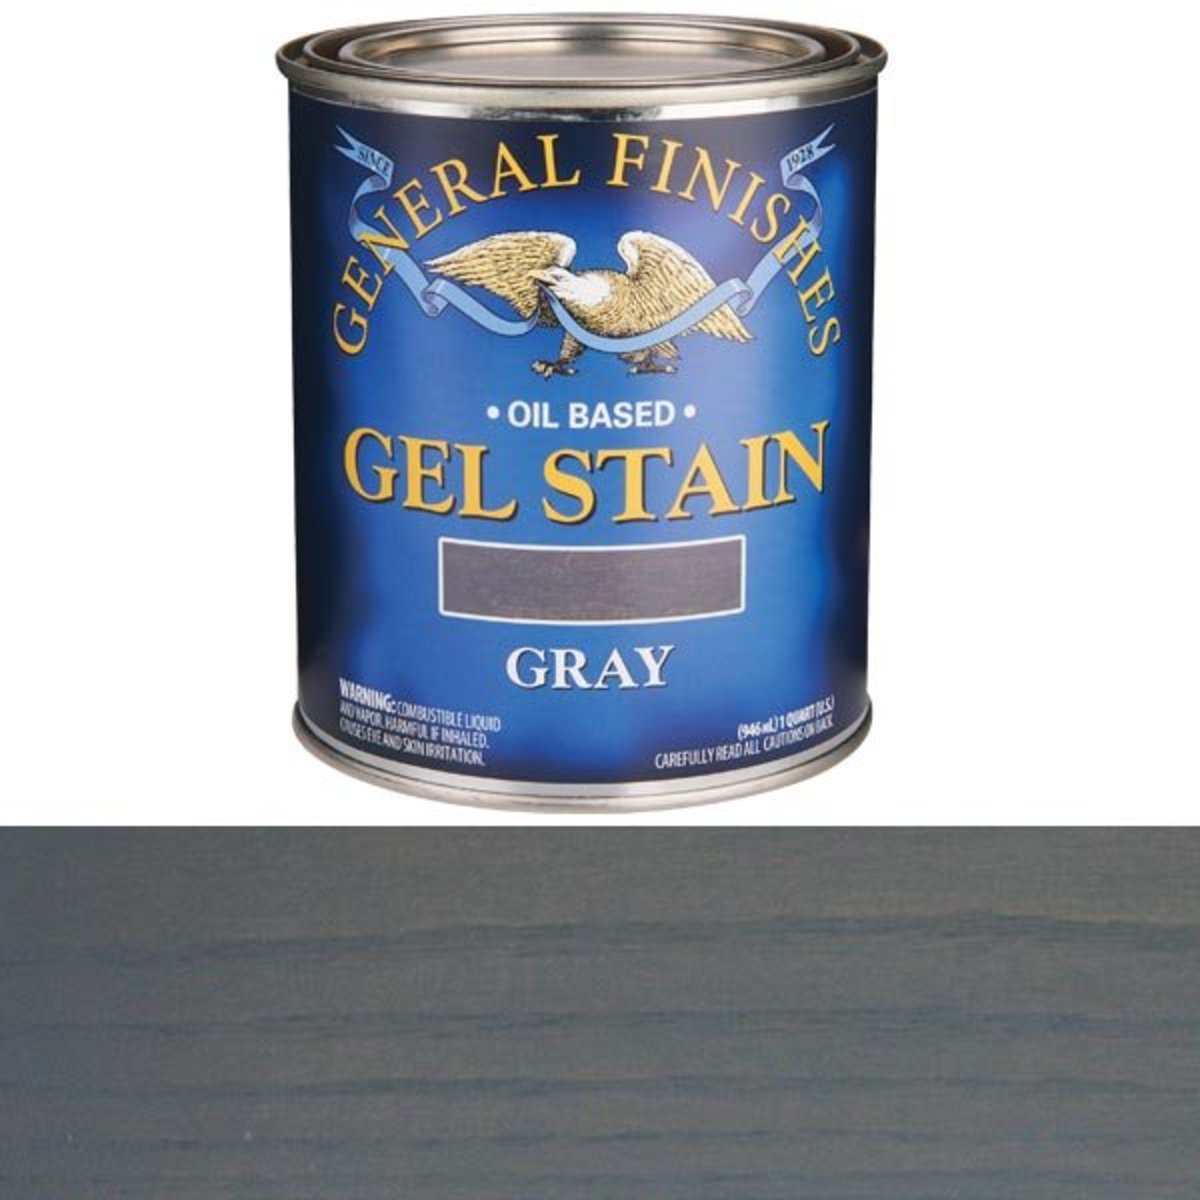 General Finishes Gray Gel Stain Quart